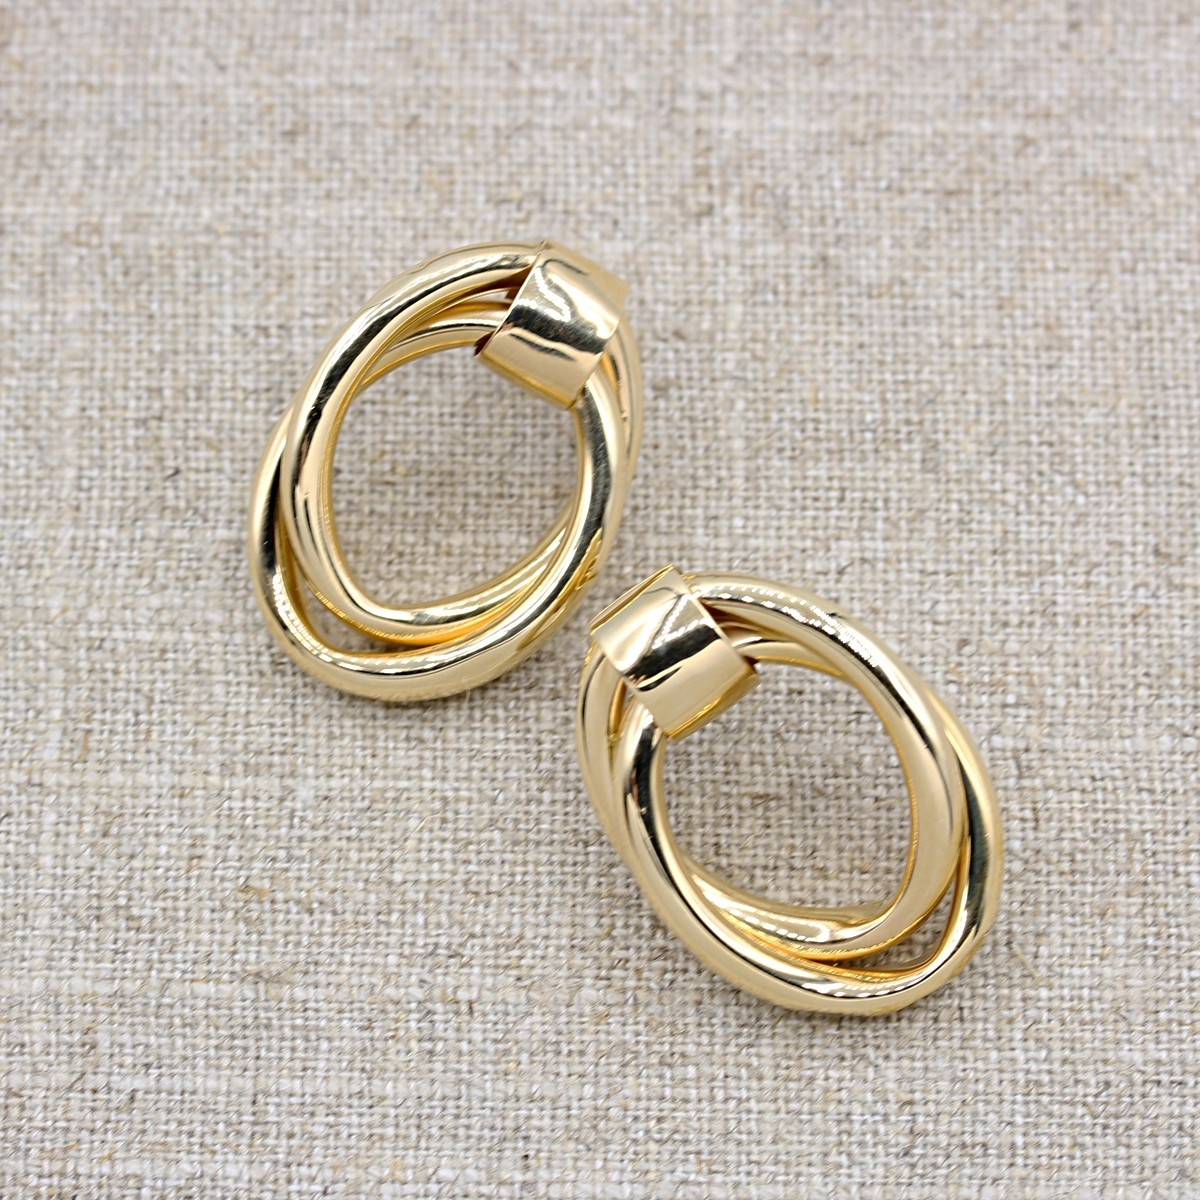 VINTAGE 14K YELLOW GOLD DOUBLE INTER LOOPED EARRINGS